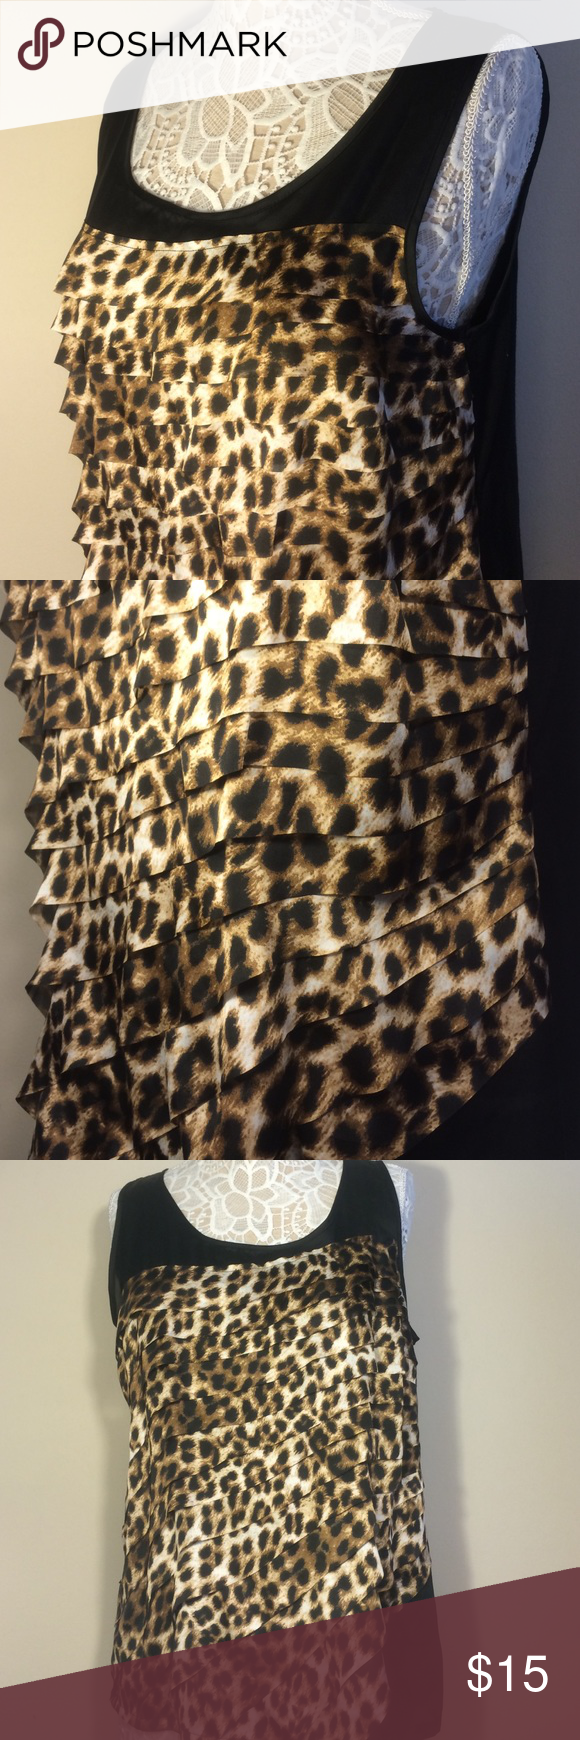 Leopard Print Sleeveless Blouse Animal print sleeveless Alfani blouse. Size large. Perfect for work or even a night out! Alfani Tops